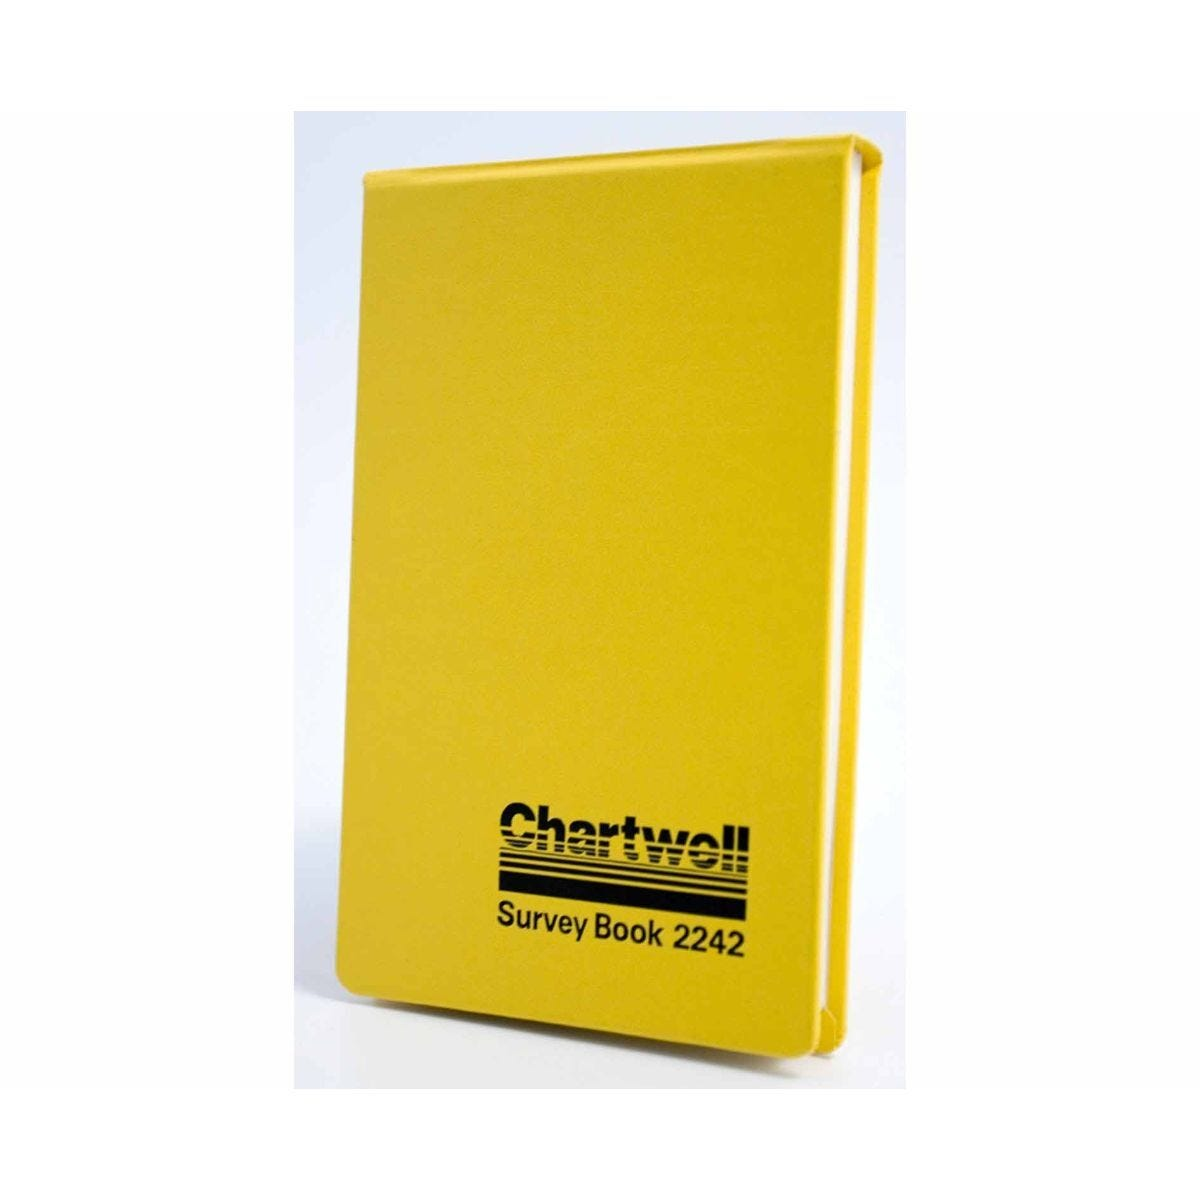 Chartwell Dimension Survey Book Lined 4x6.5 Inch